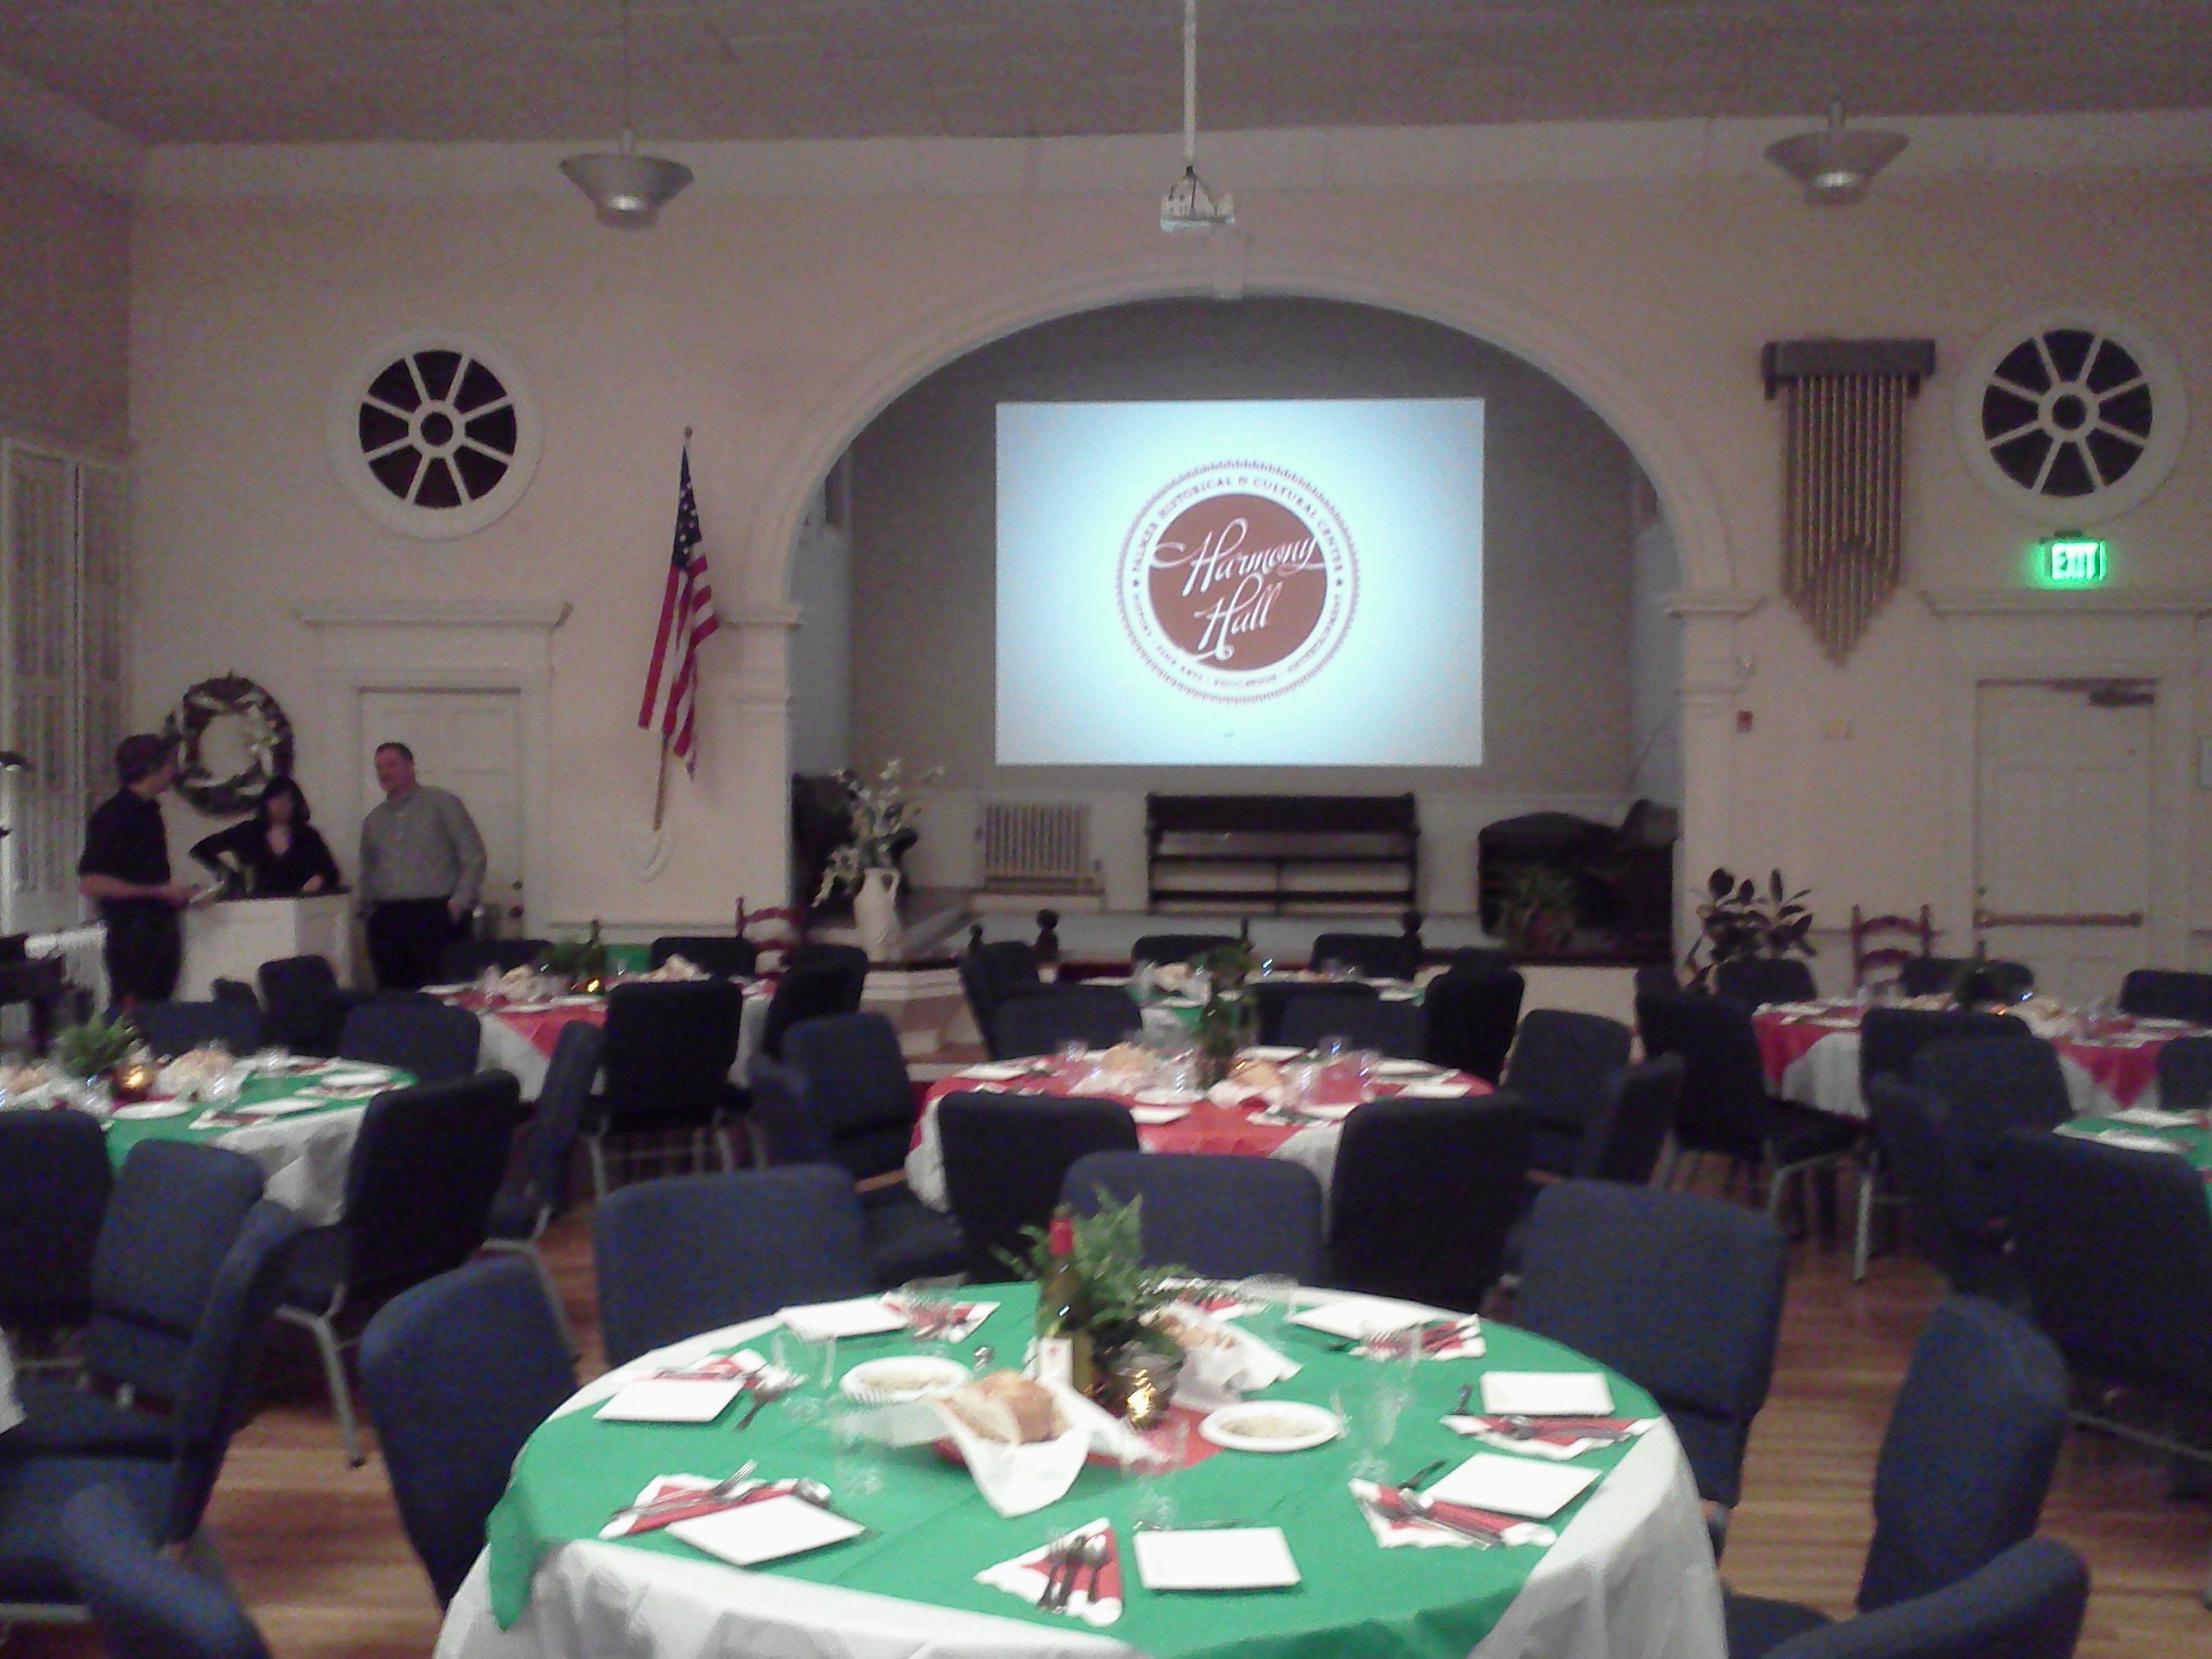 Harmony Hall set up for an International Night dinner.